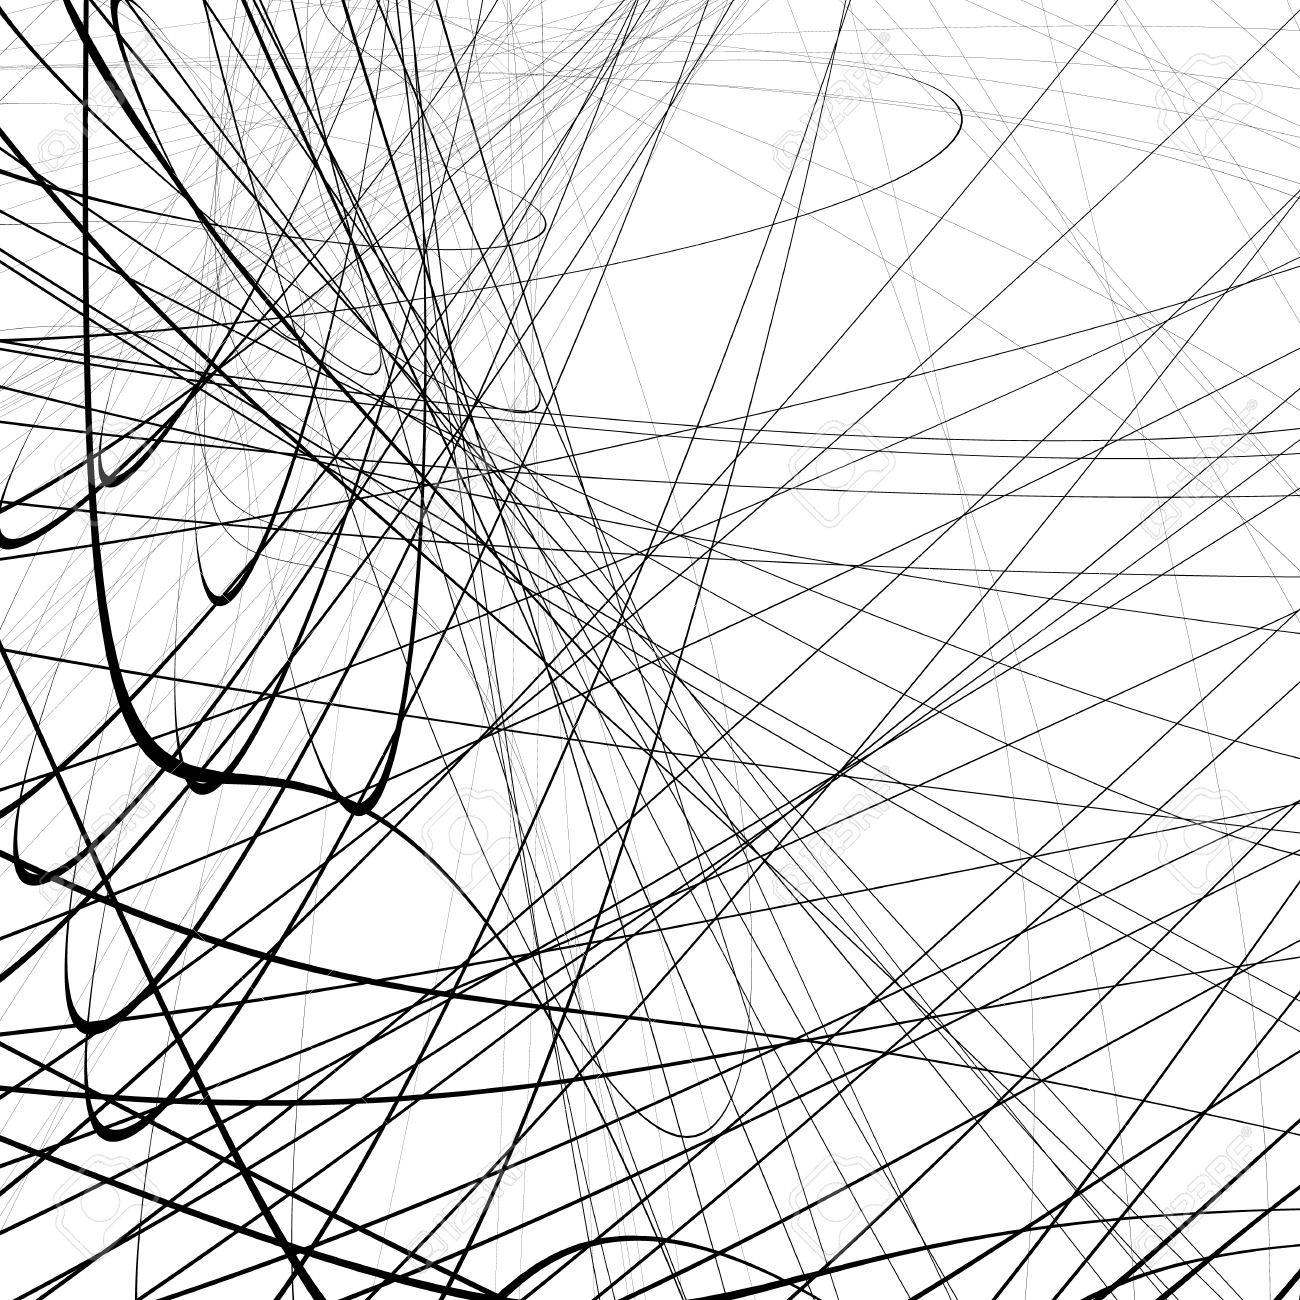 1300x1300 Random Squiggly, Squiggle Intersecting Lines In Chaotic Style